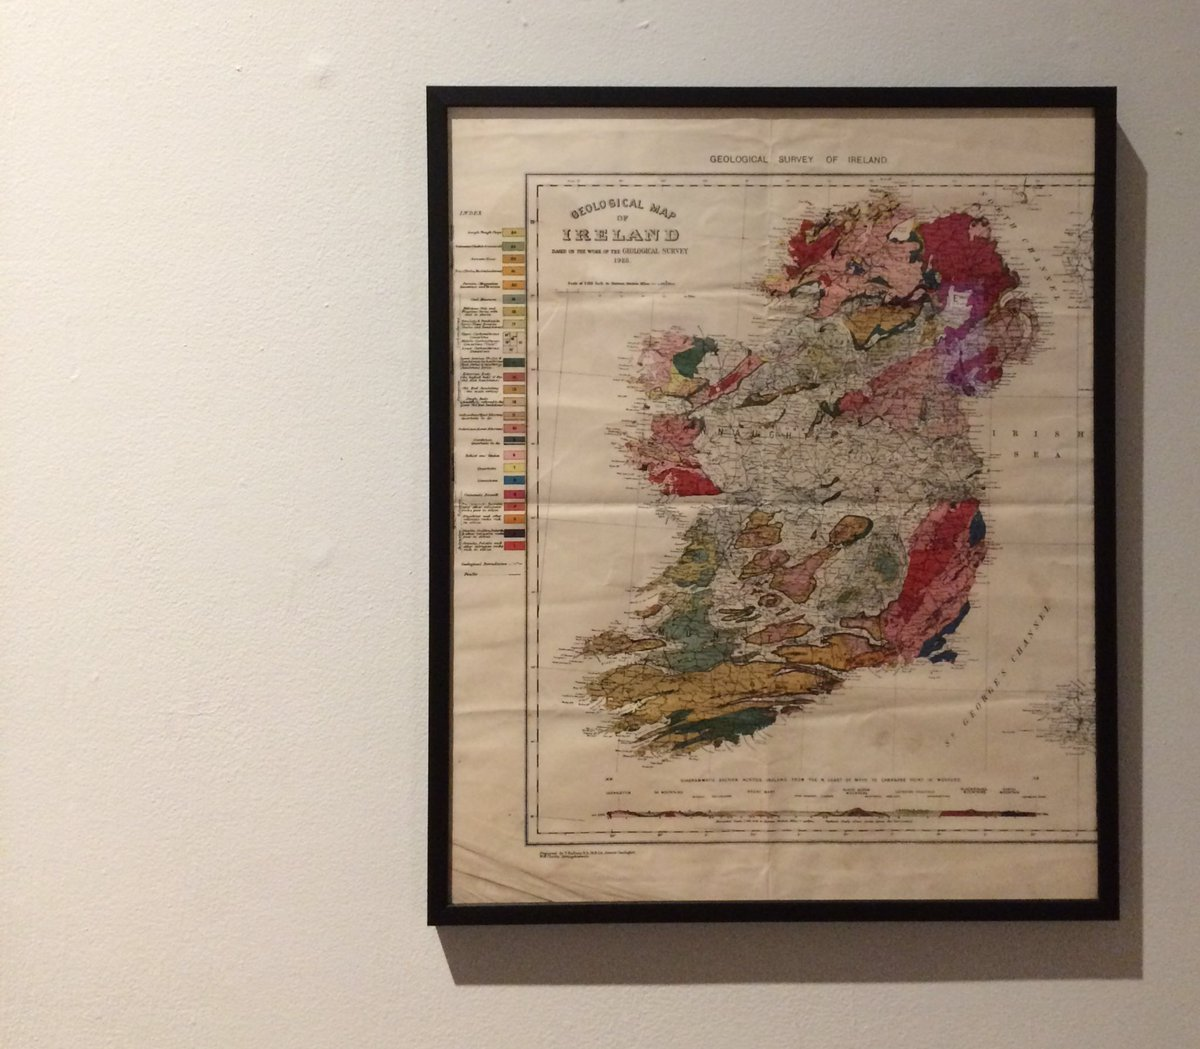 From contemporary mapmaking we begin our journey back in time with the beautiful Geological Survey of Ireland (1928). #LoveIrishResearch <br>http://pic.twitter.com/pWVRaDQltc